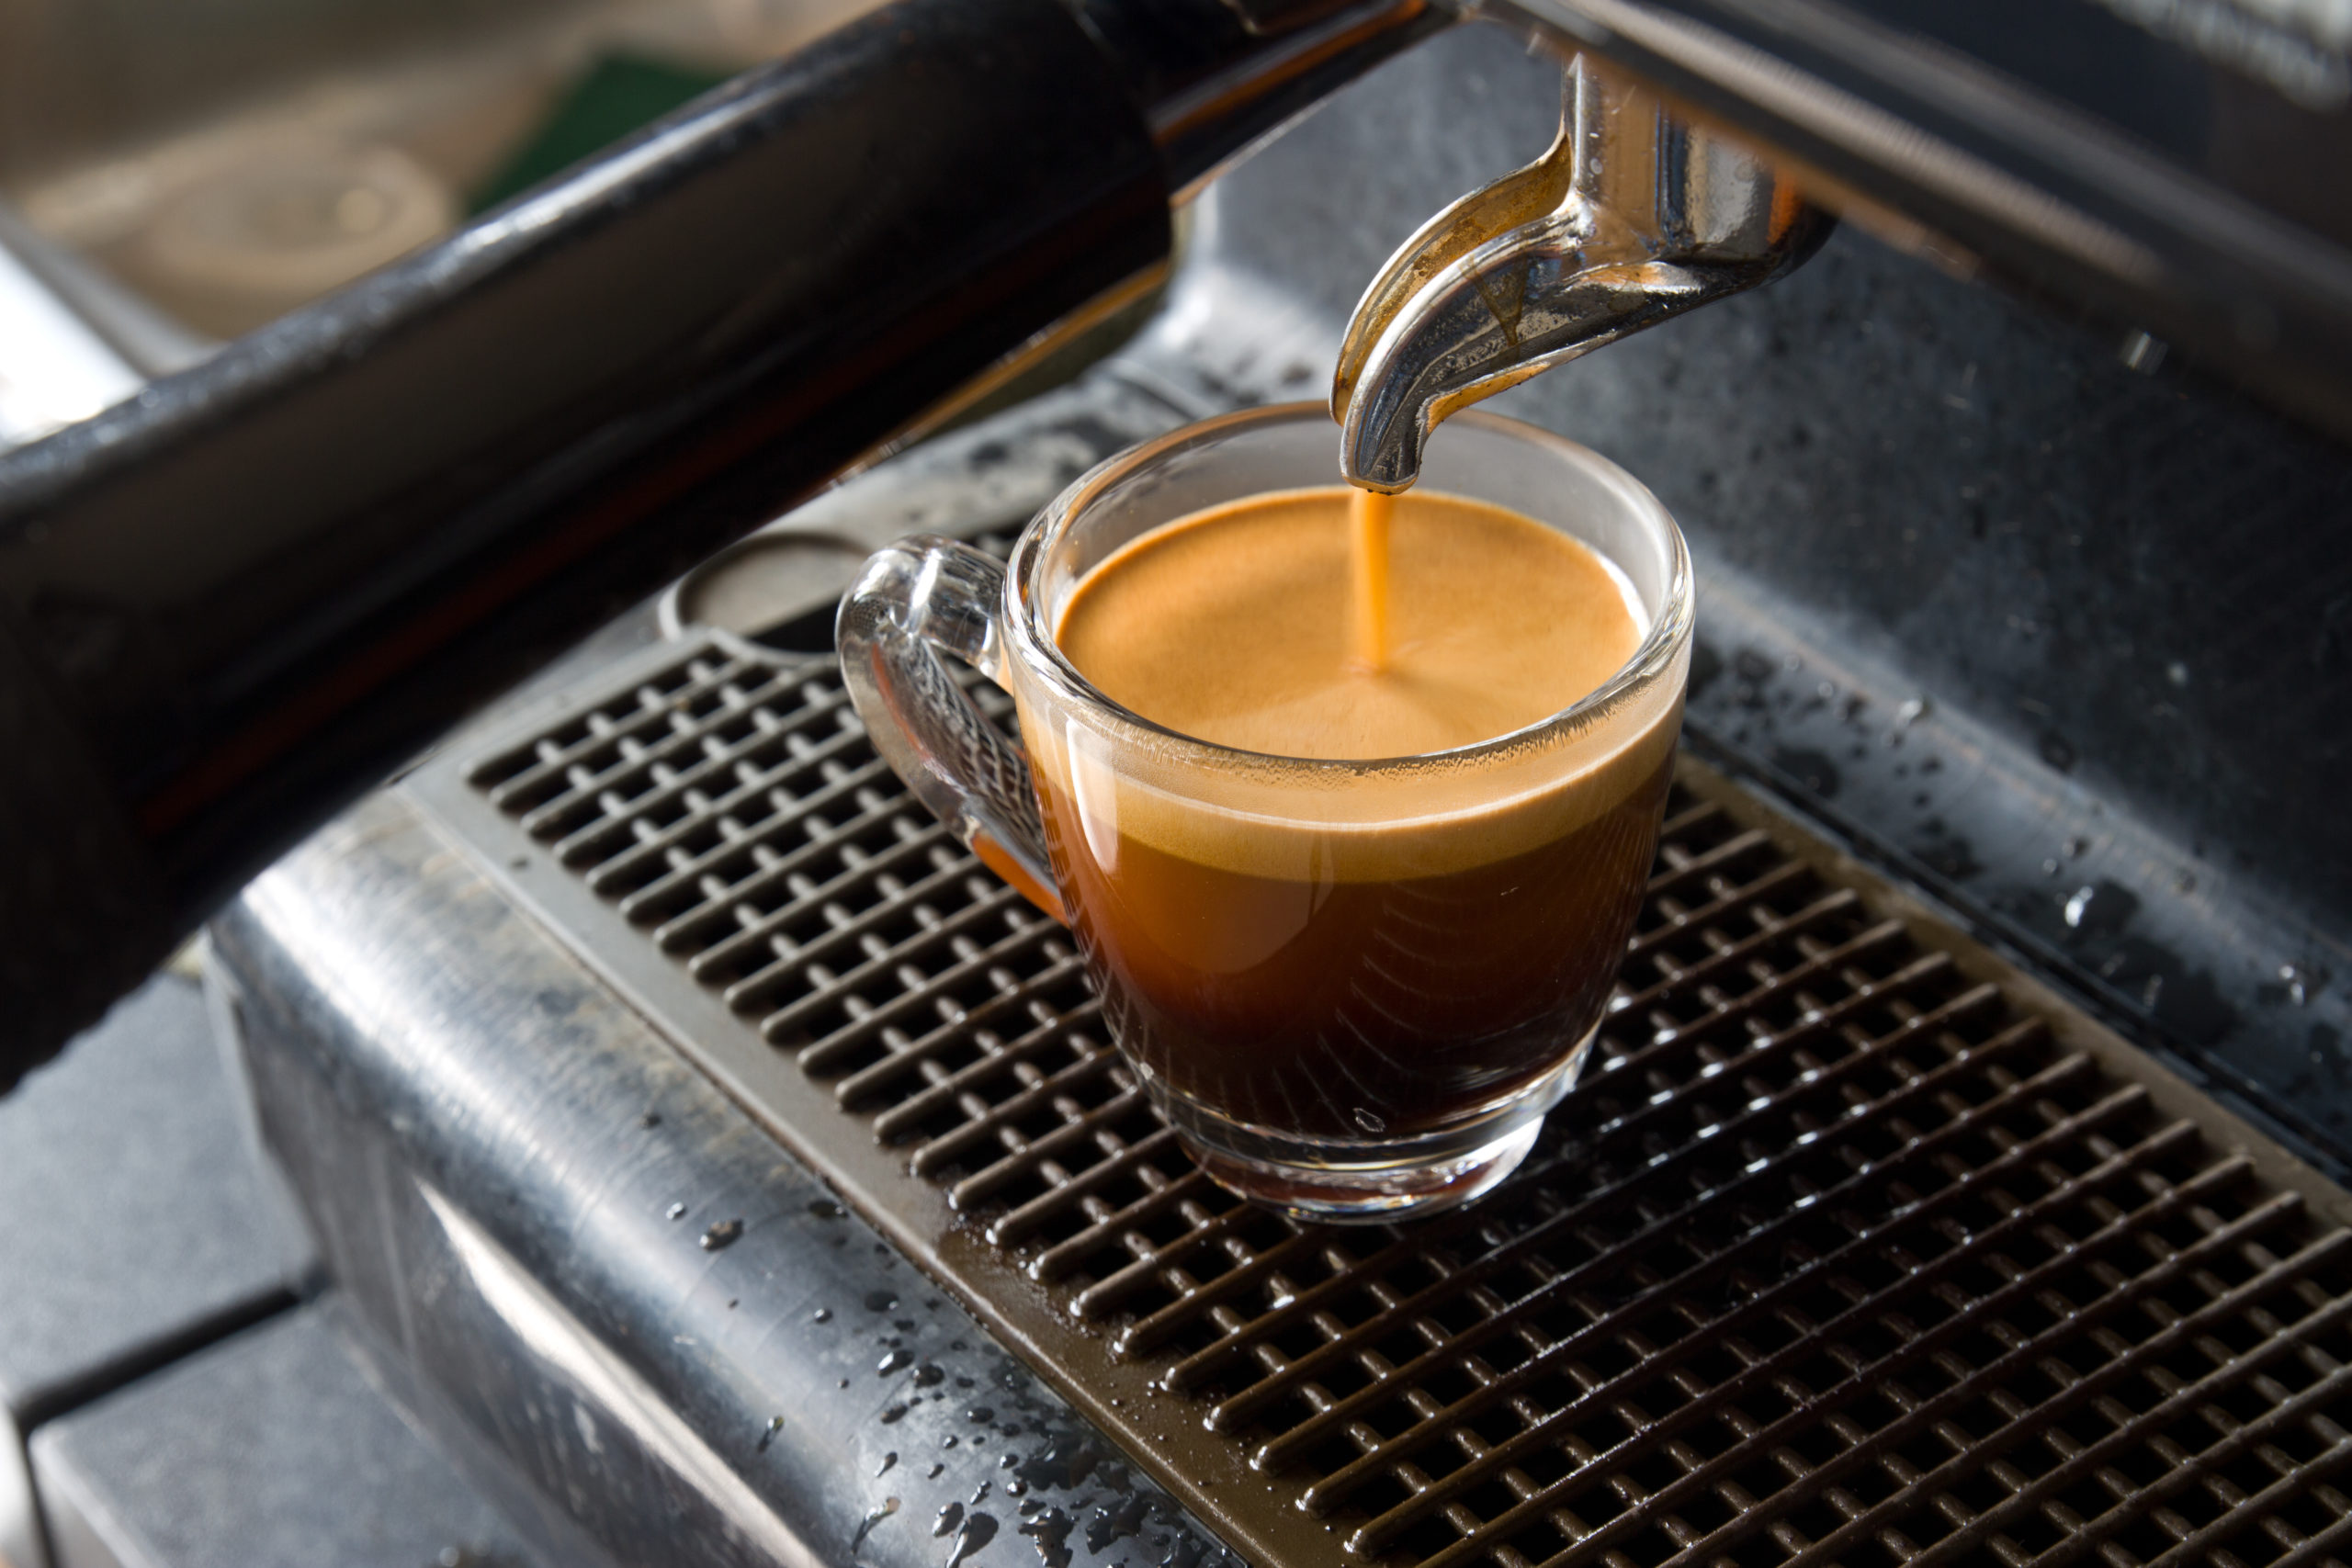 One of most popular types of Coffee - Espresso